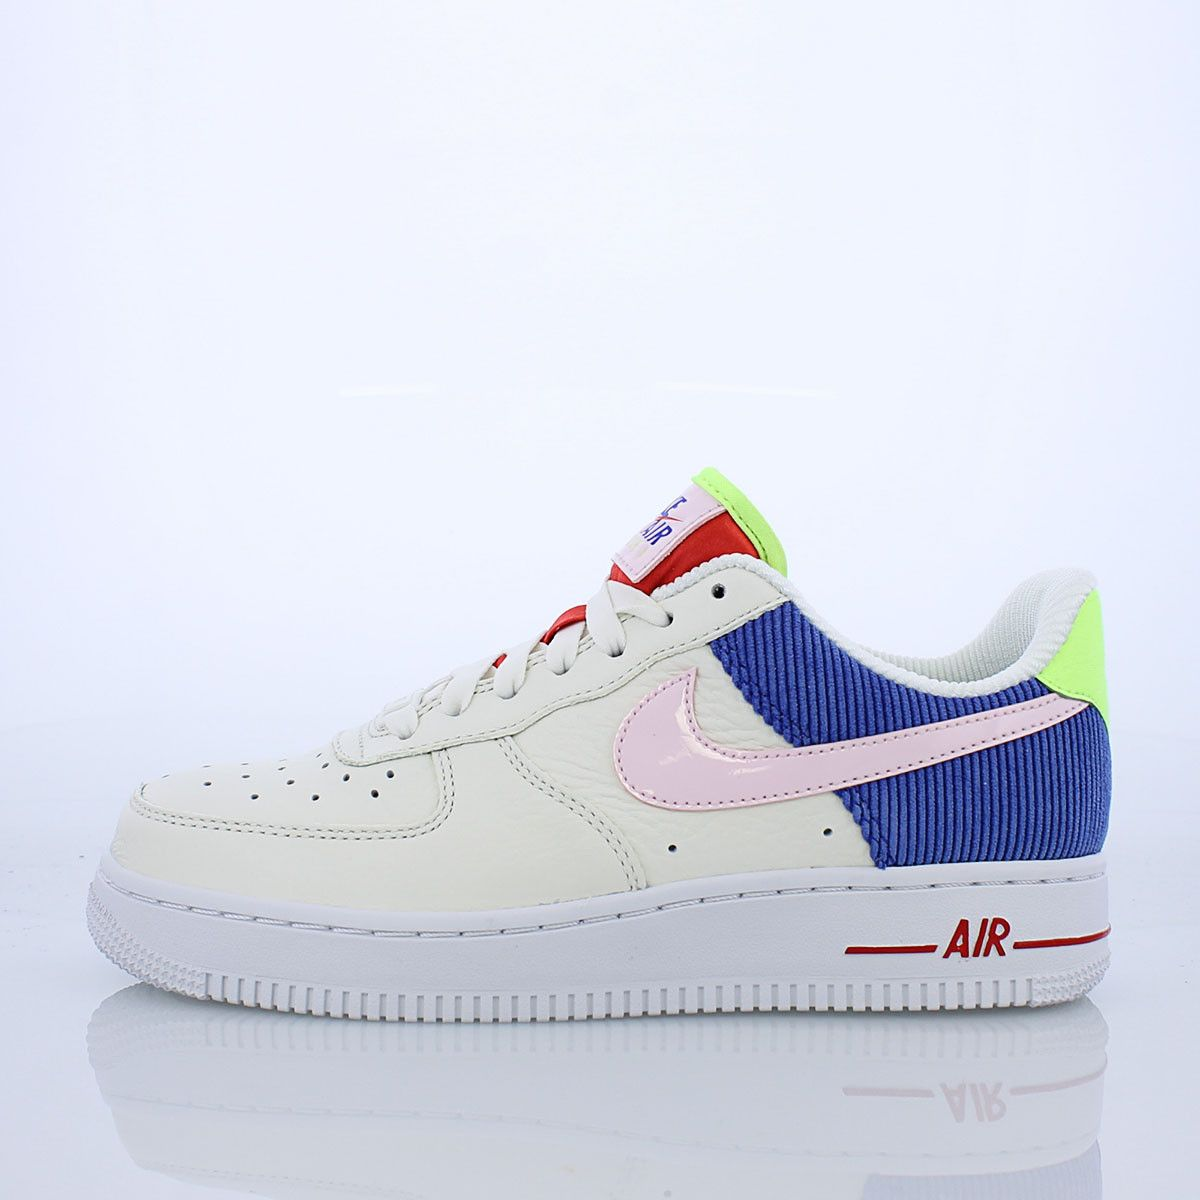 watch b1113 6d44e While flaunting a vibrant color scheme the Air Force 1 Women s gets a  corduroy makeover.